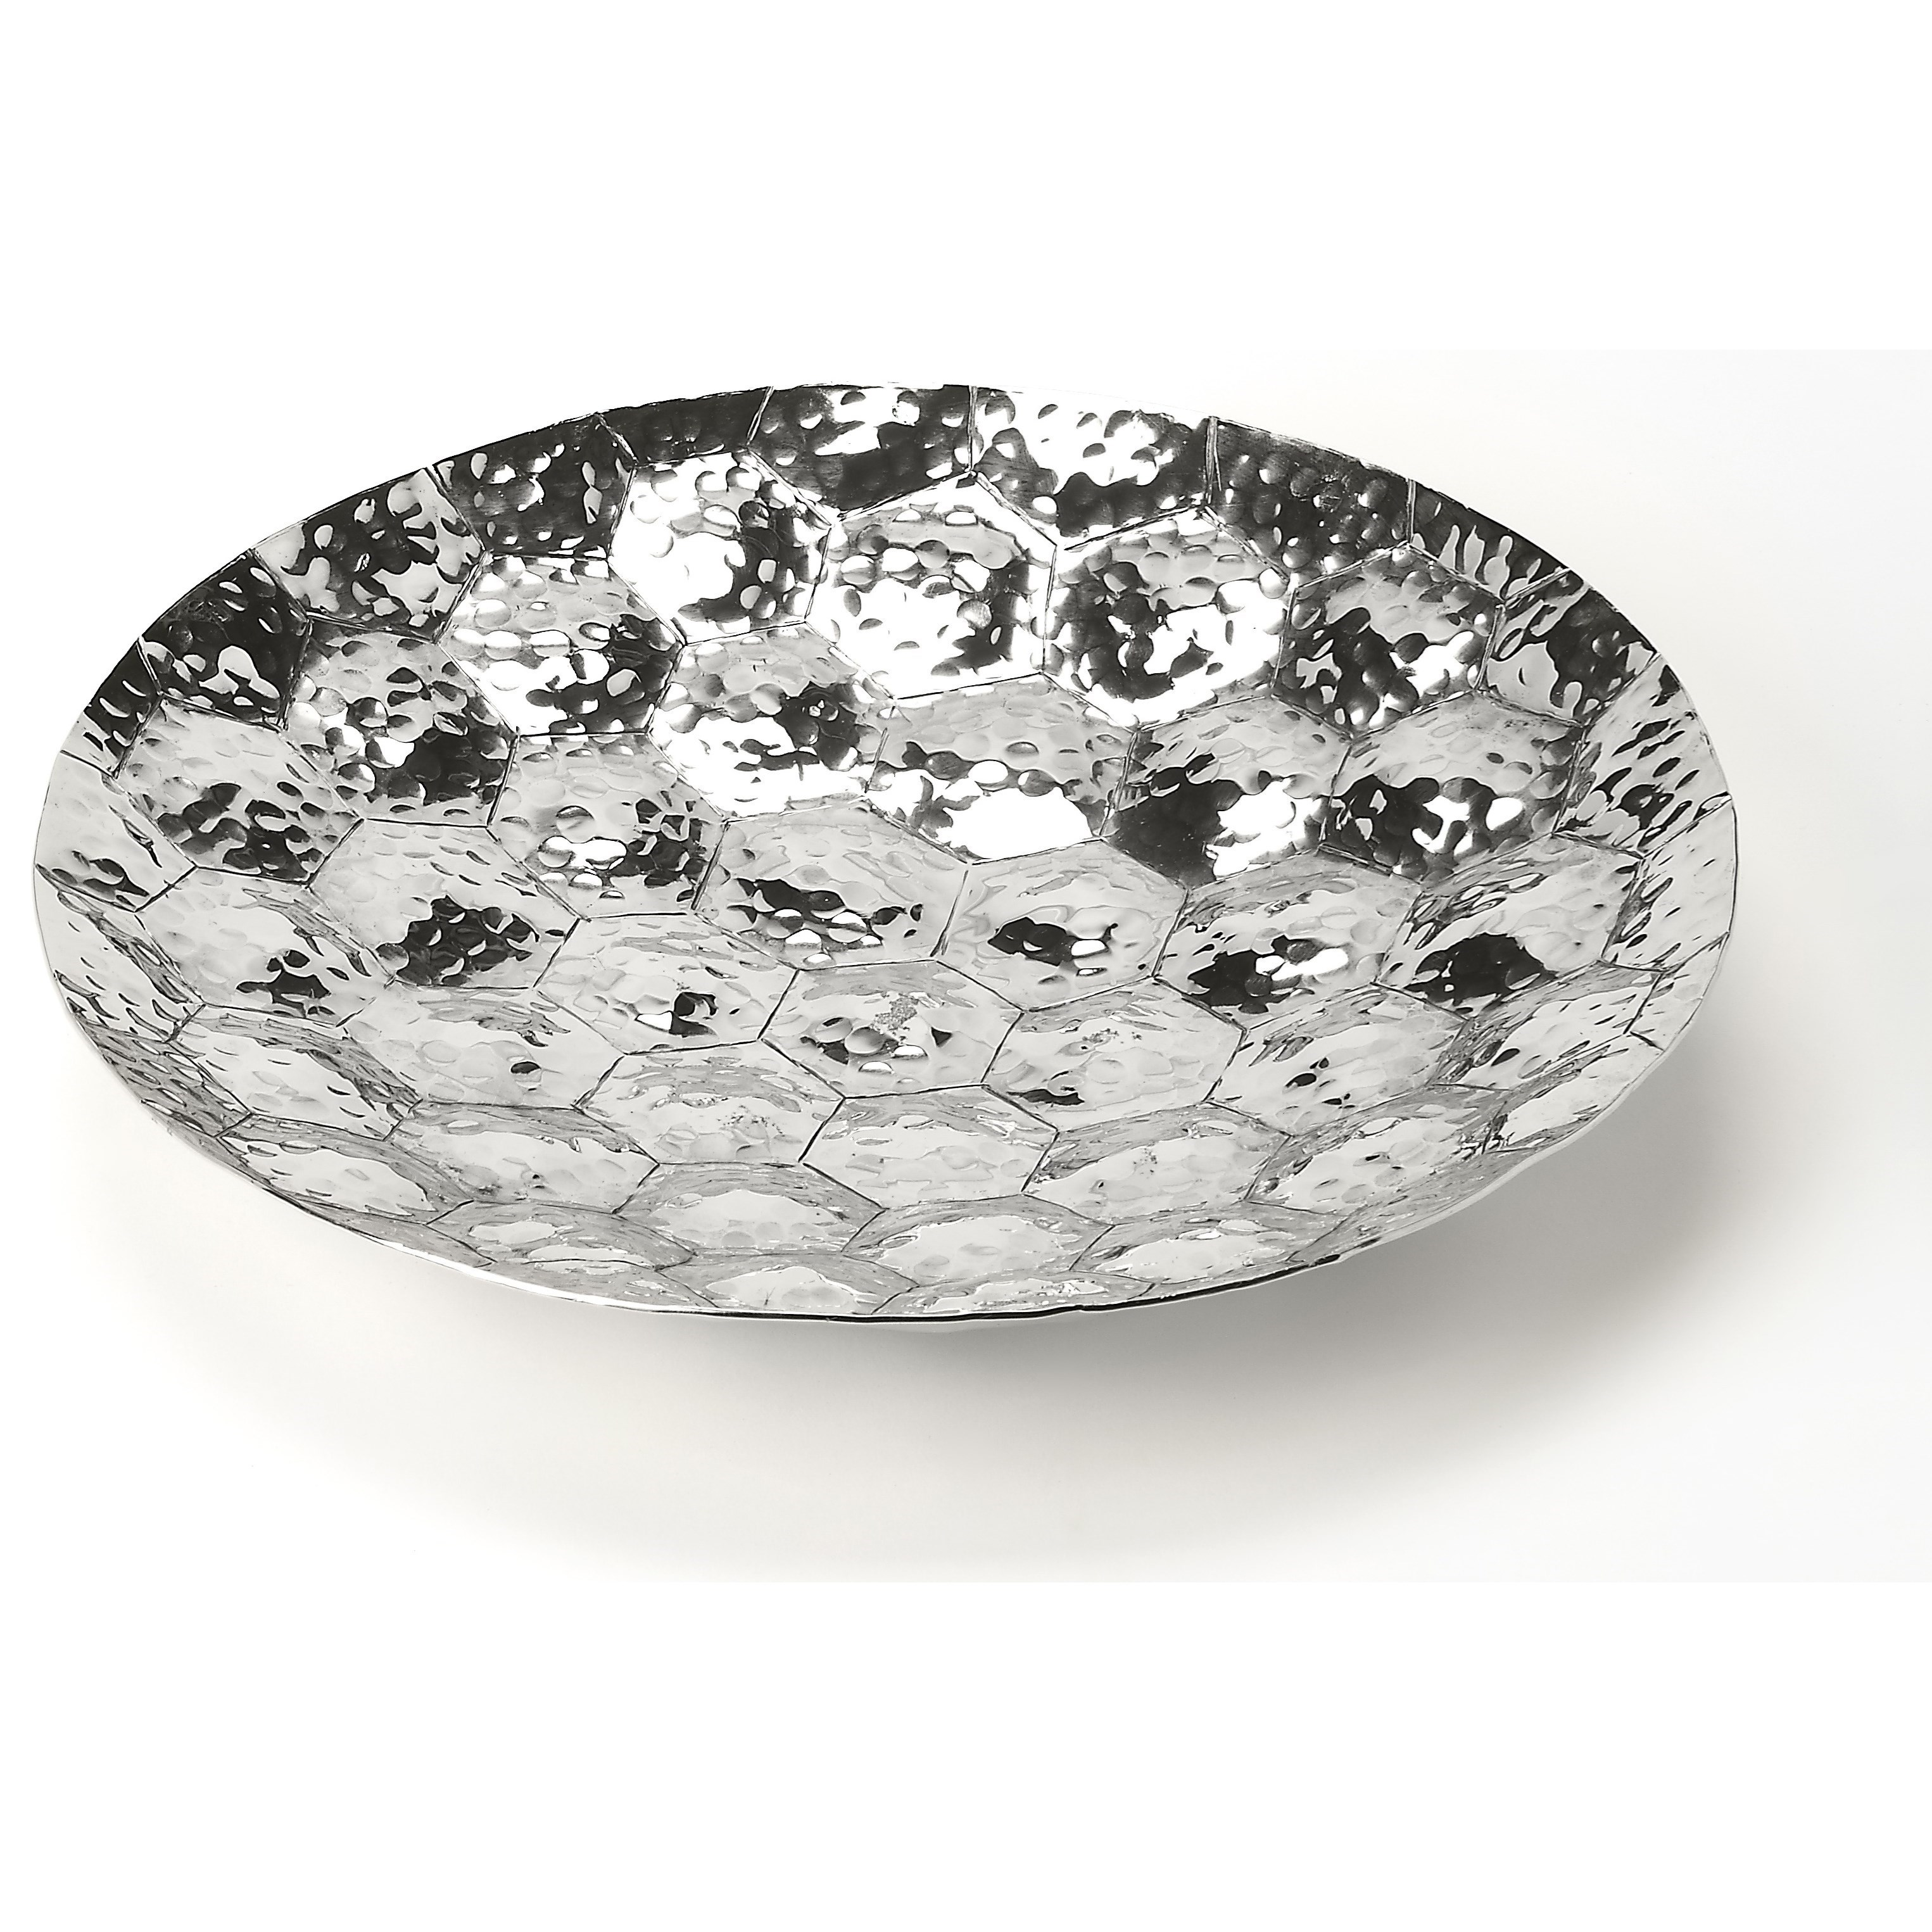 Butler Specialty Company Hors D'oeuvres Platter - Item Number: 6193016